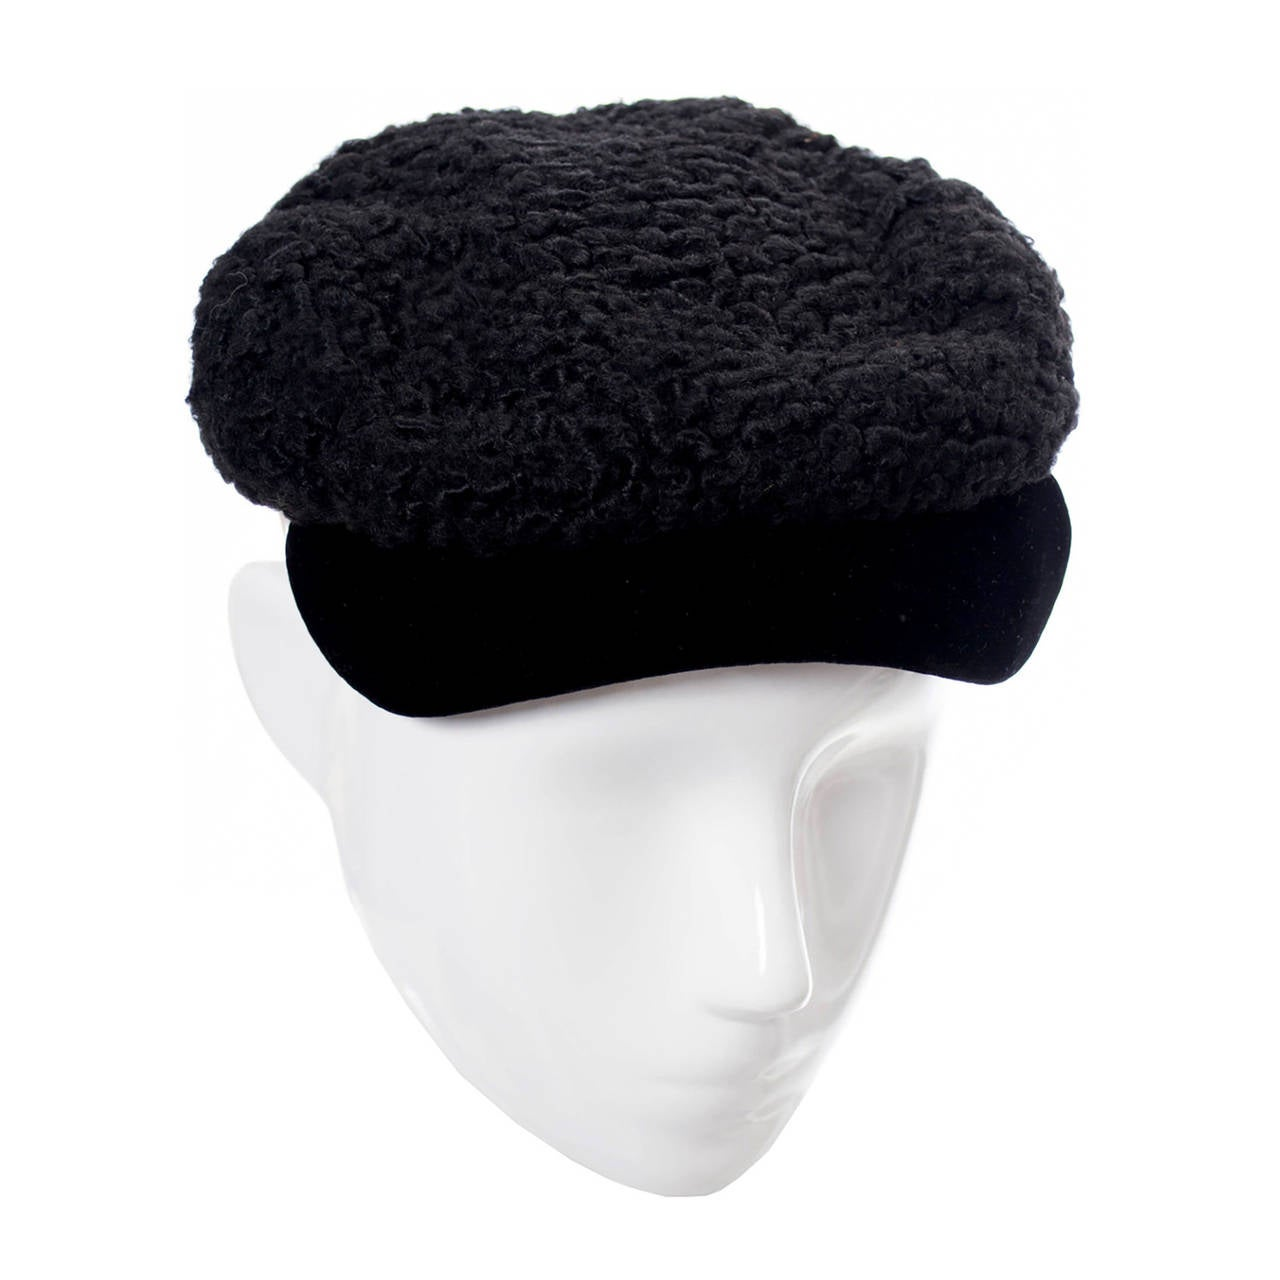 Hattie Carnegie Vintage Hat From I Magnin Curly Lambswool & Velvet Newsboy Cap  For Sale